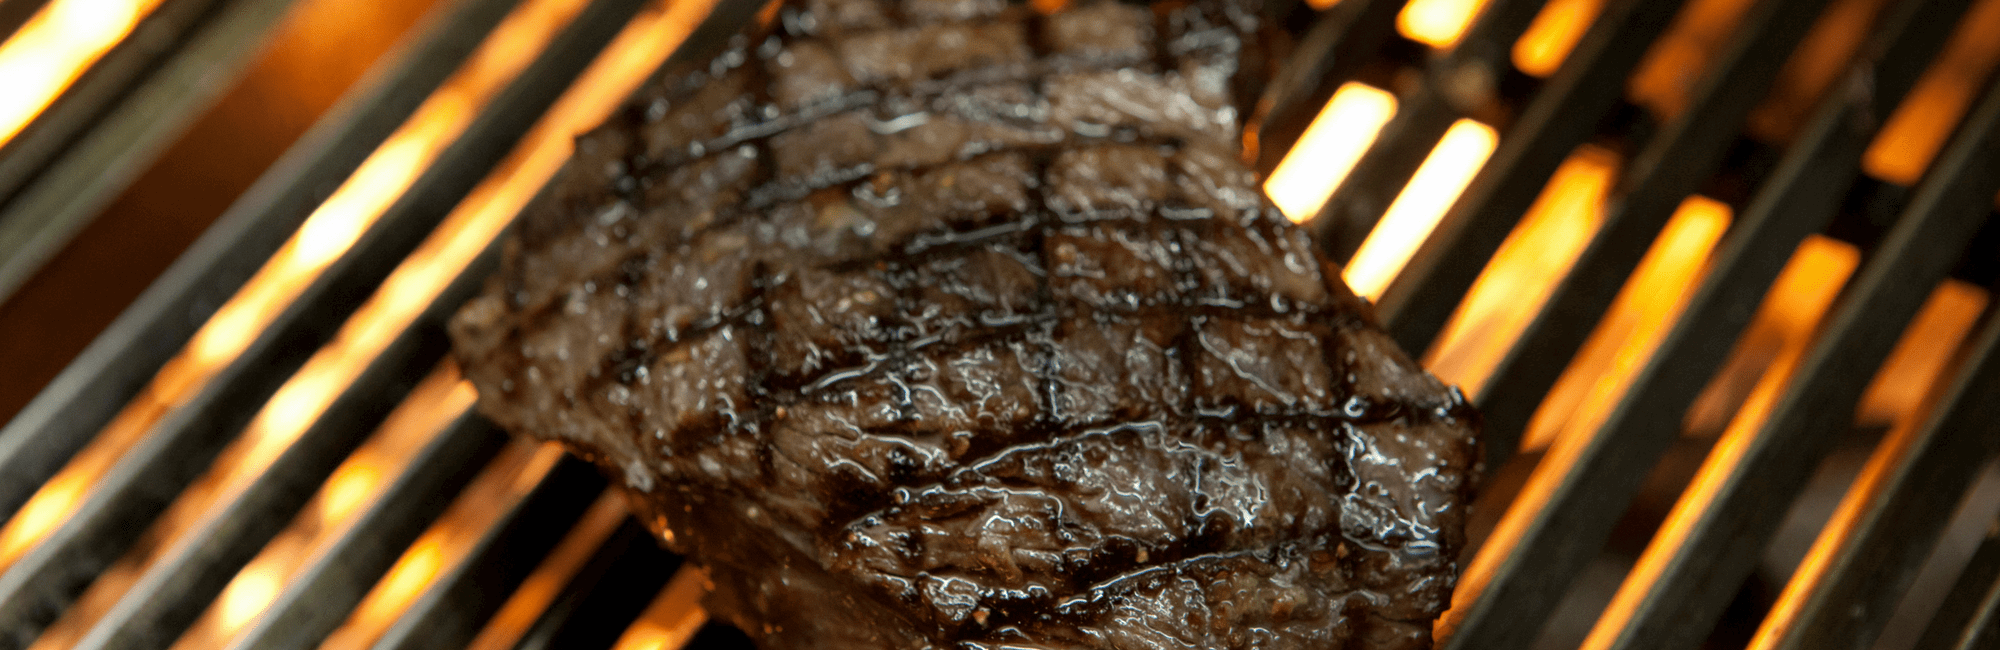 Our Beef | Steak & Fish Grill Restaurant | 34 Mayfair